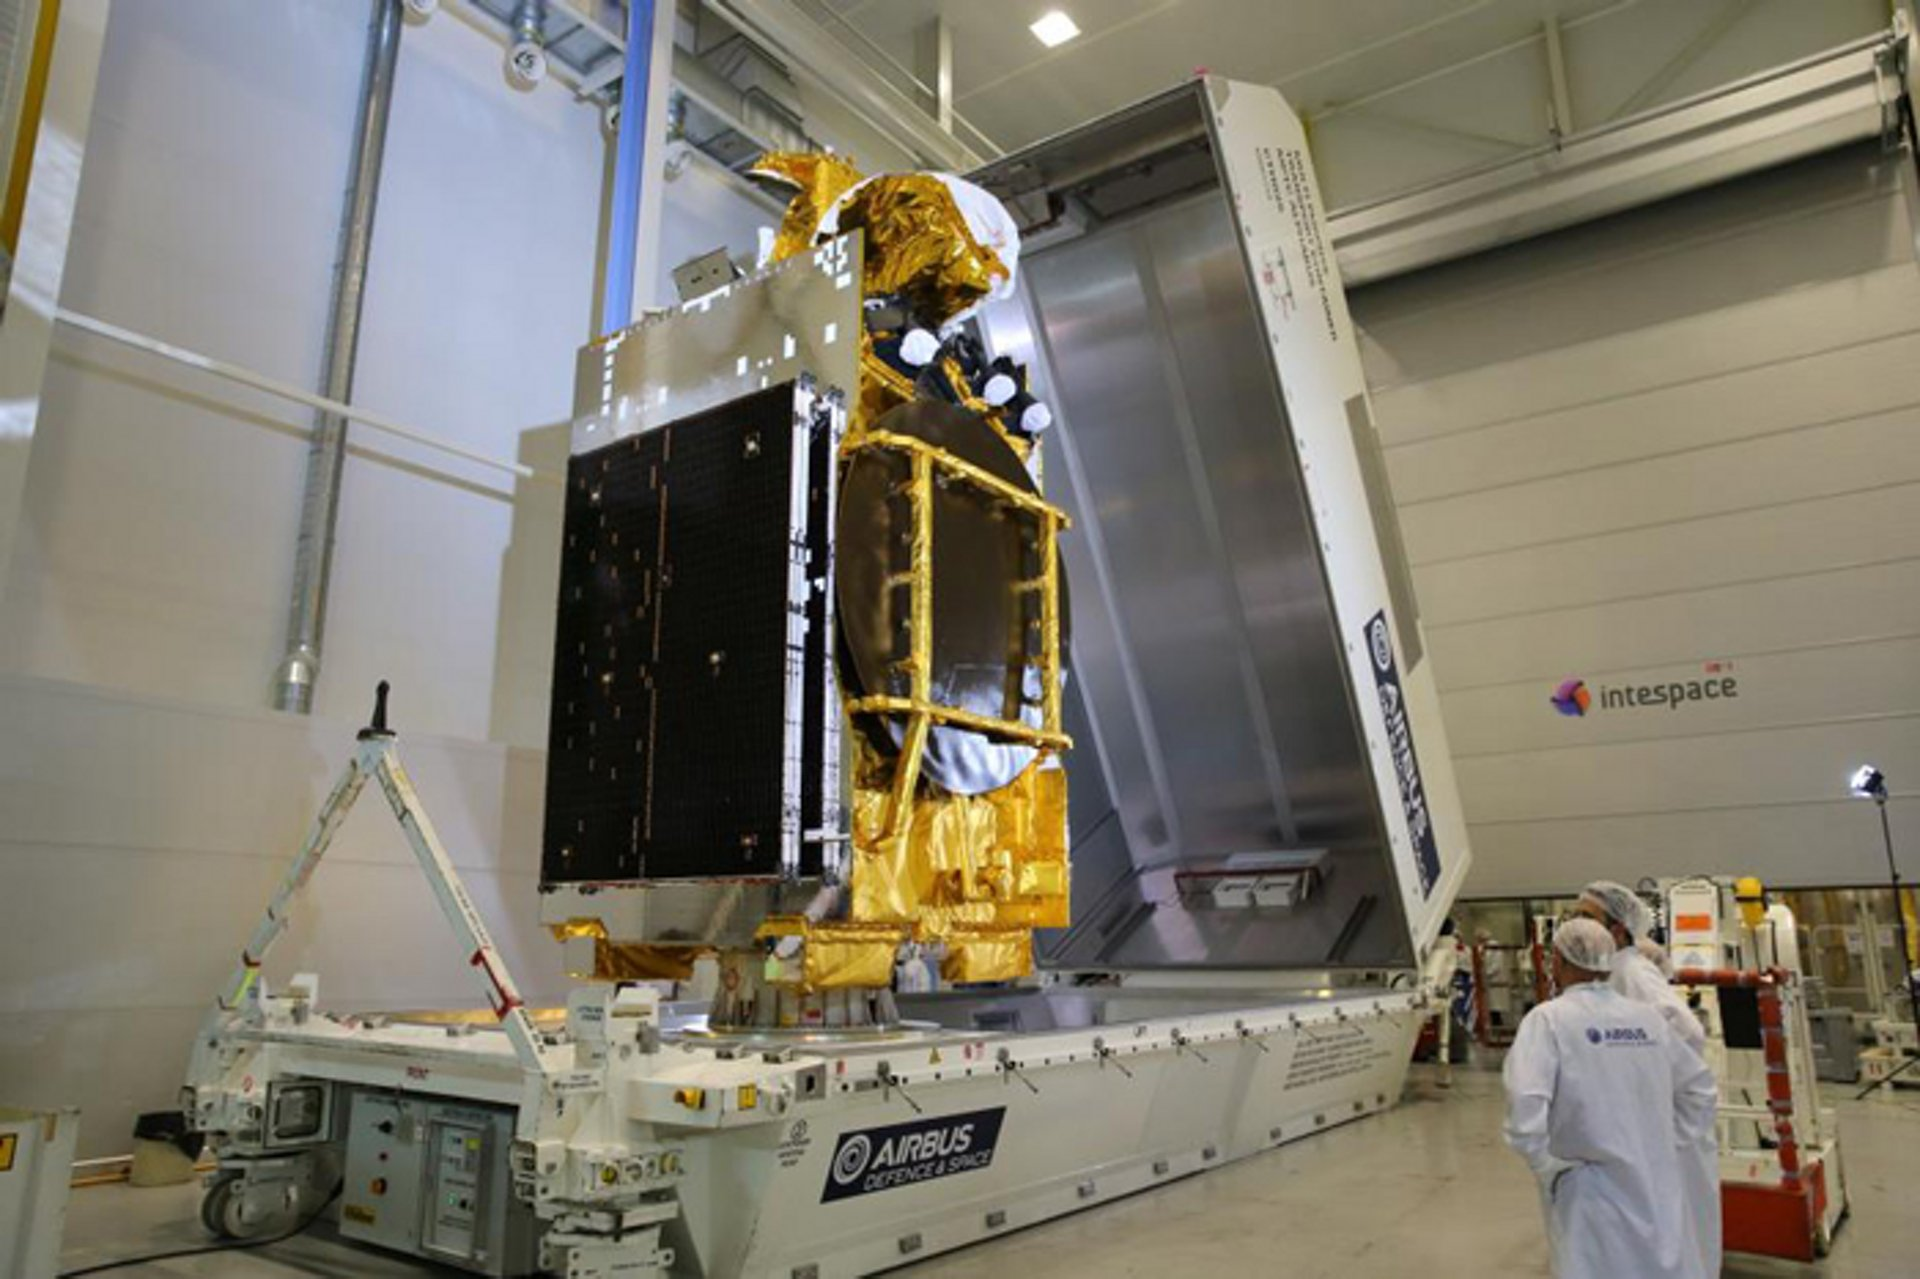 ARABSAT 6B (BADR-7) satellite at Airbus Toulouse before shipping